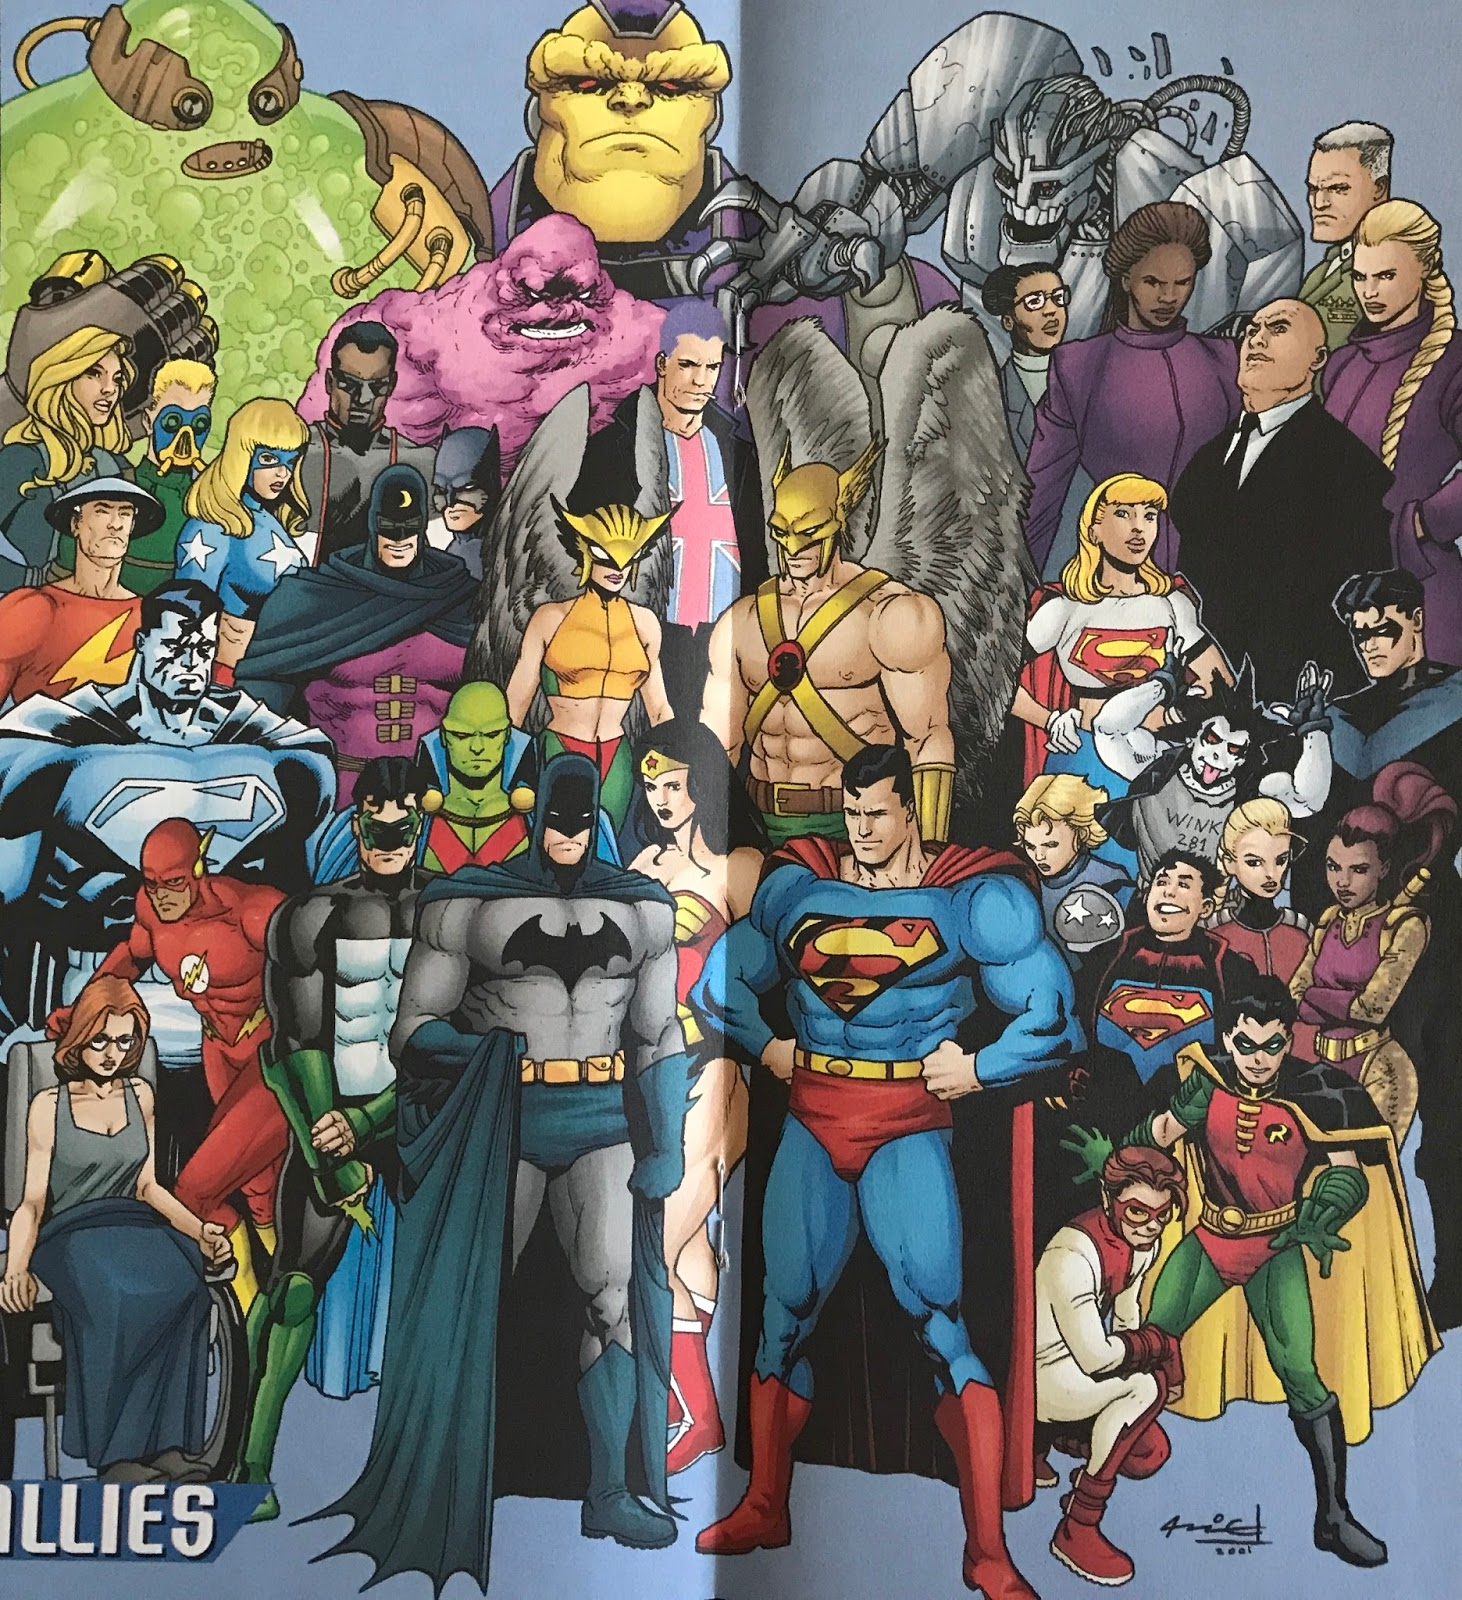 The bart allen flash blog superman our worlds at war secret the text is presented as a news report by lois lane detailing the jsa jla this new suicide squad and of course young justice thecheapjerseys Image collections